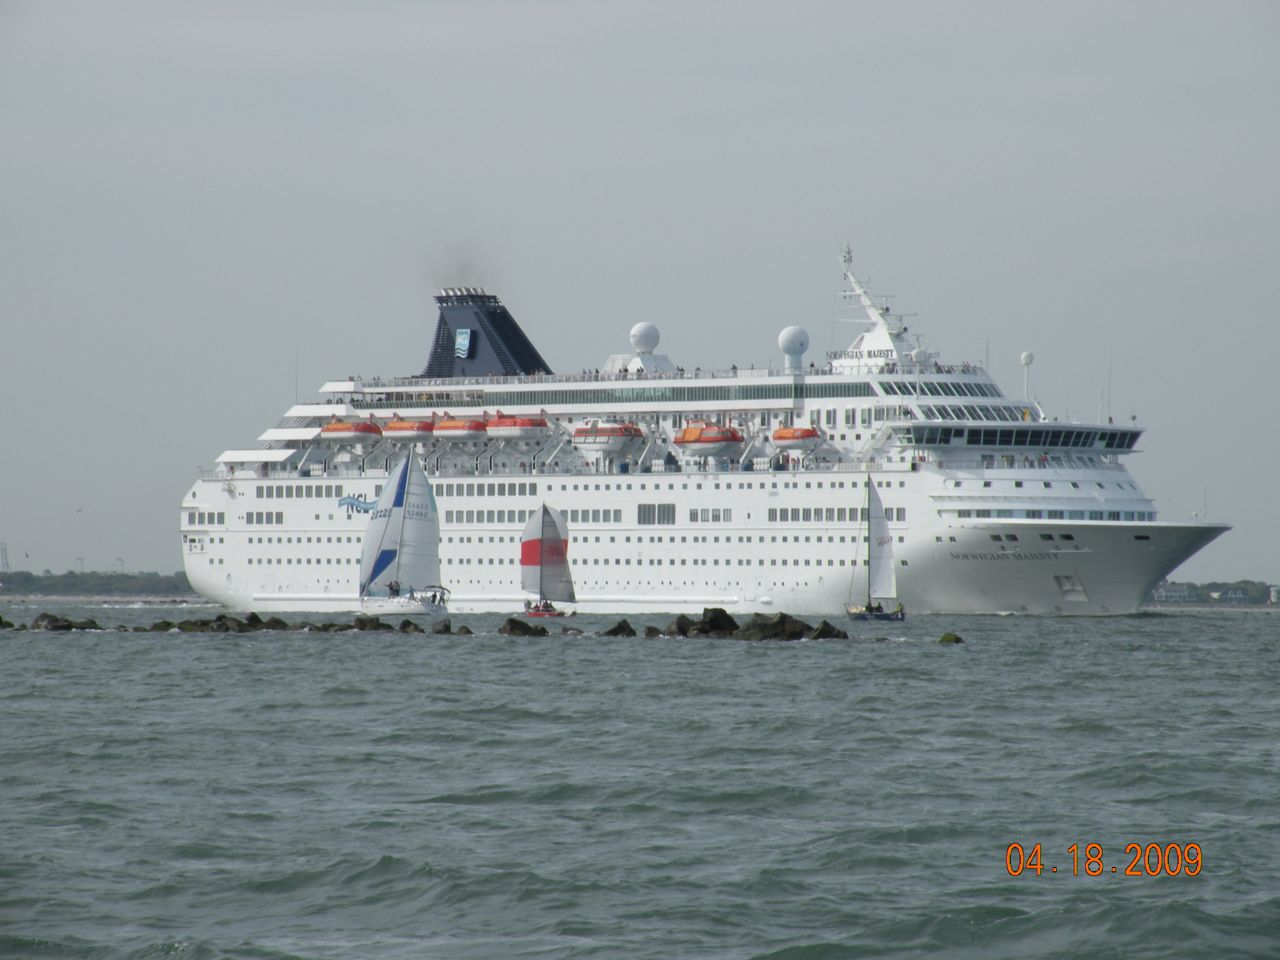 If containerships were not enough, don't forget to dodge the cruise ship as you head for the windward mark. - (c) Copyright 2009